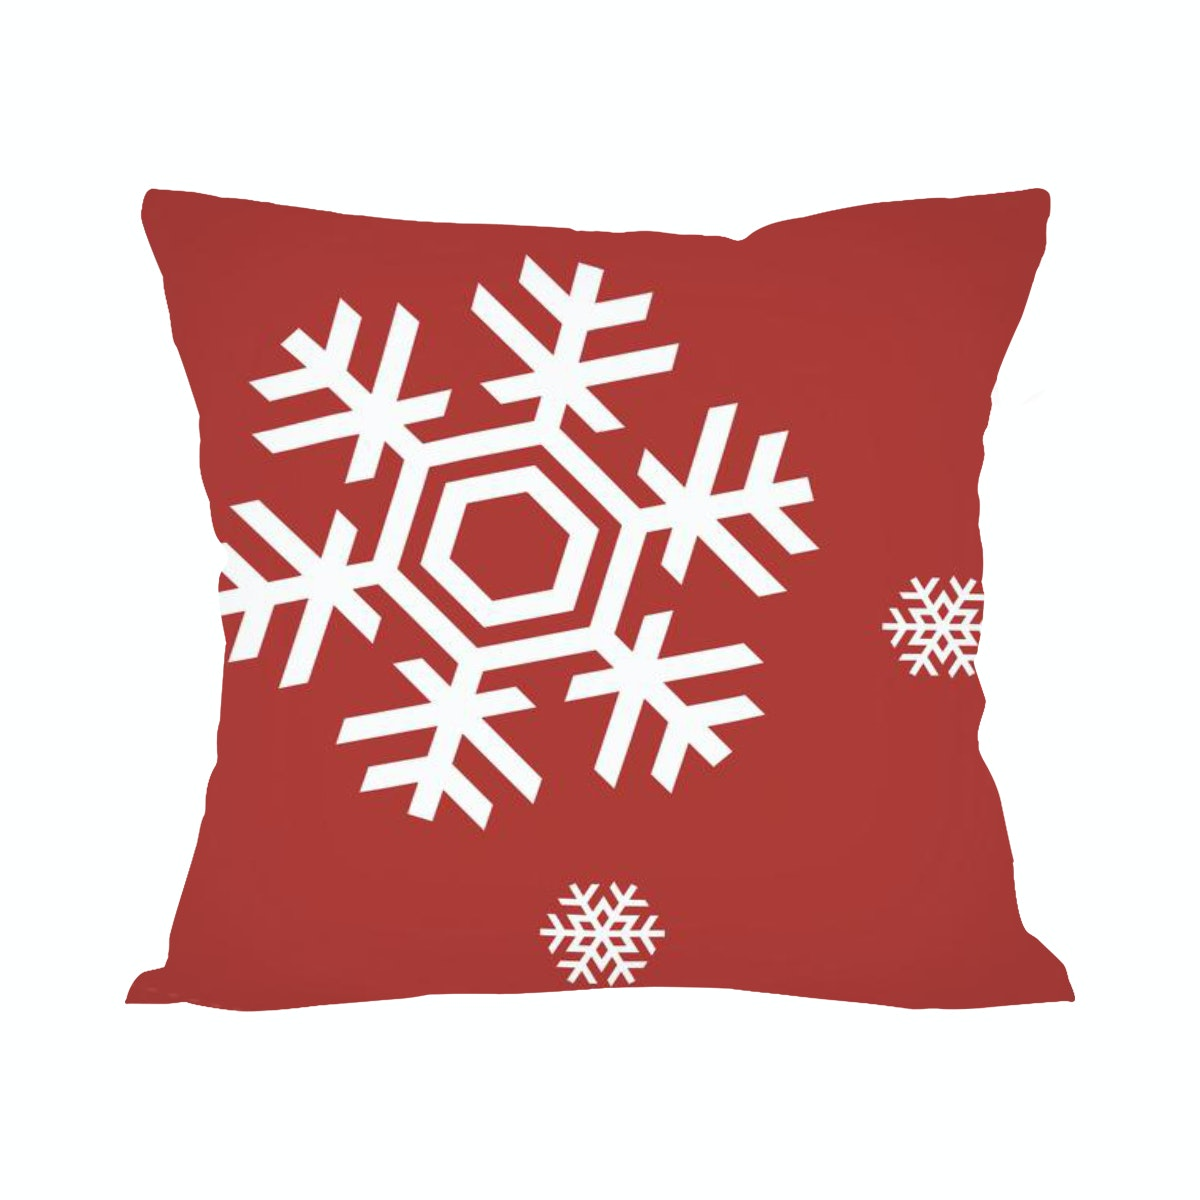 Tees Christmas Pillow